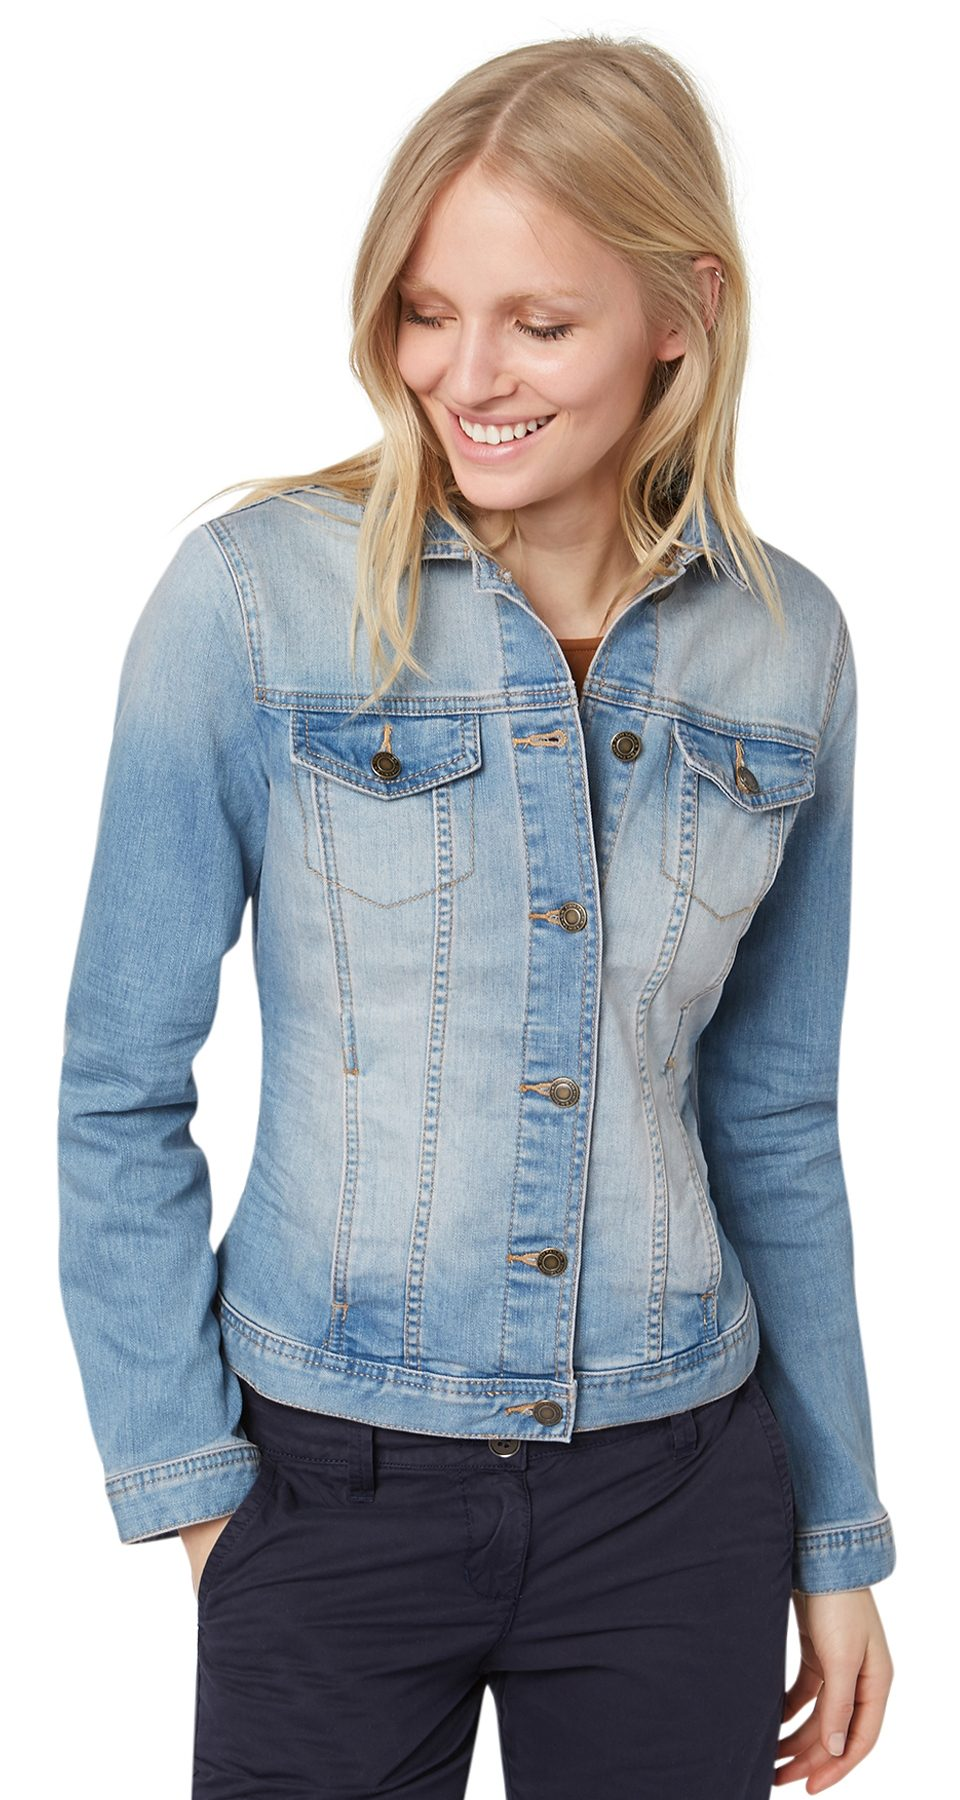 TOM TAILOR Jacke »Jeans-Jacke mit Waschung«